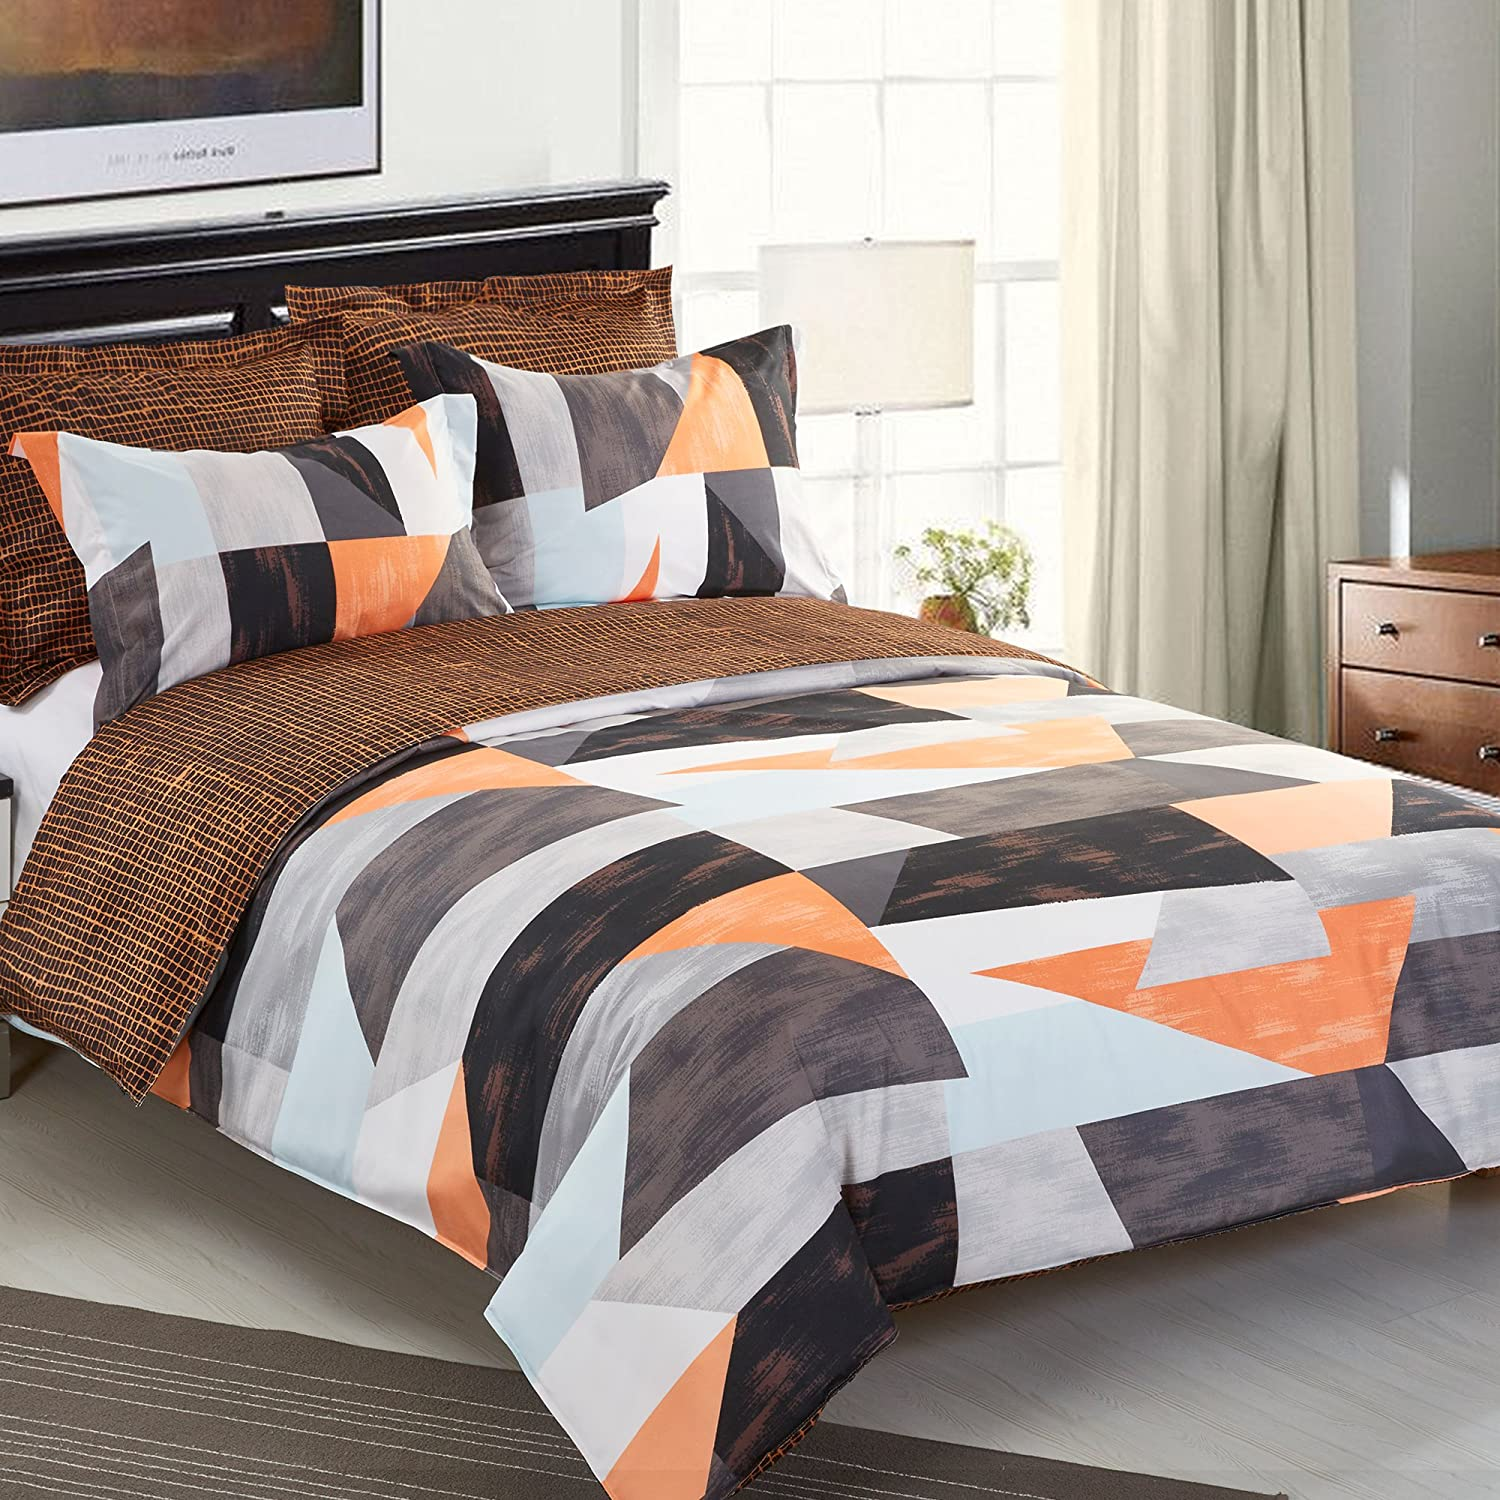 NTBAY 5 pcs Reversible Fashionable and Simple Geometric Pattern Printed Microfiber Duvet Cover Set